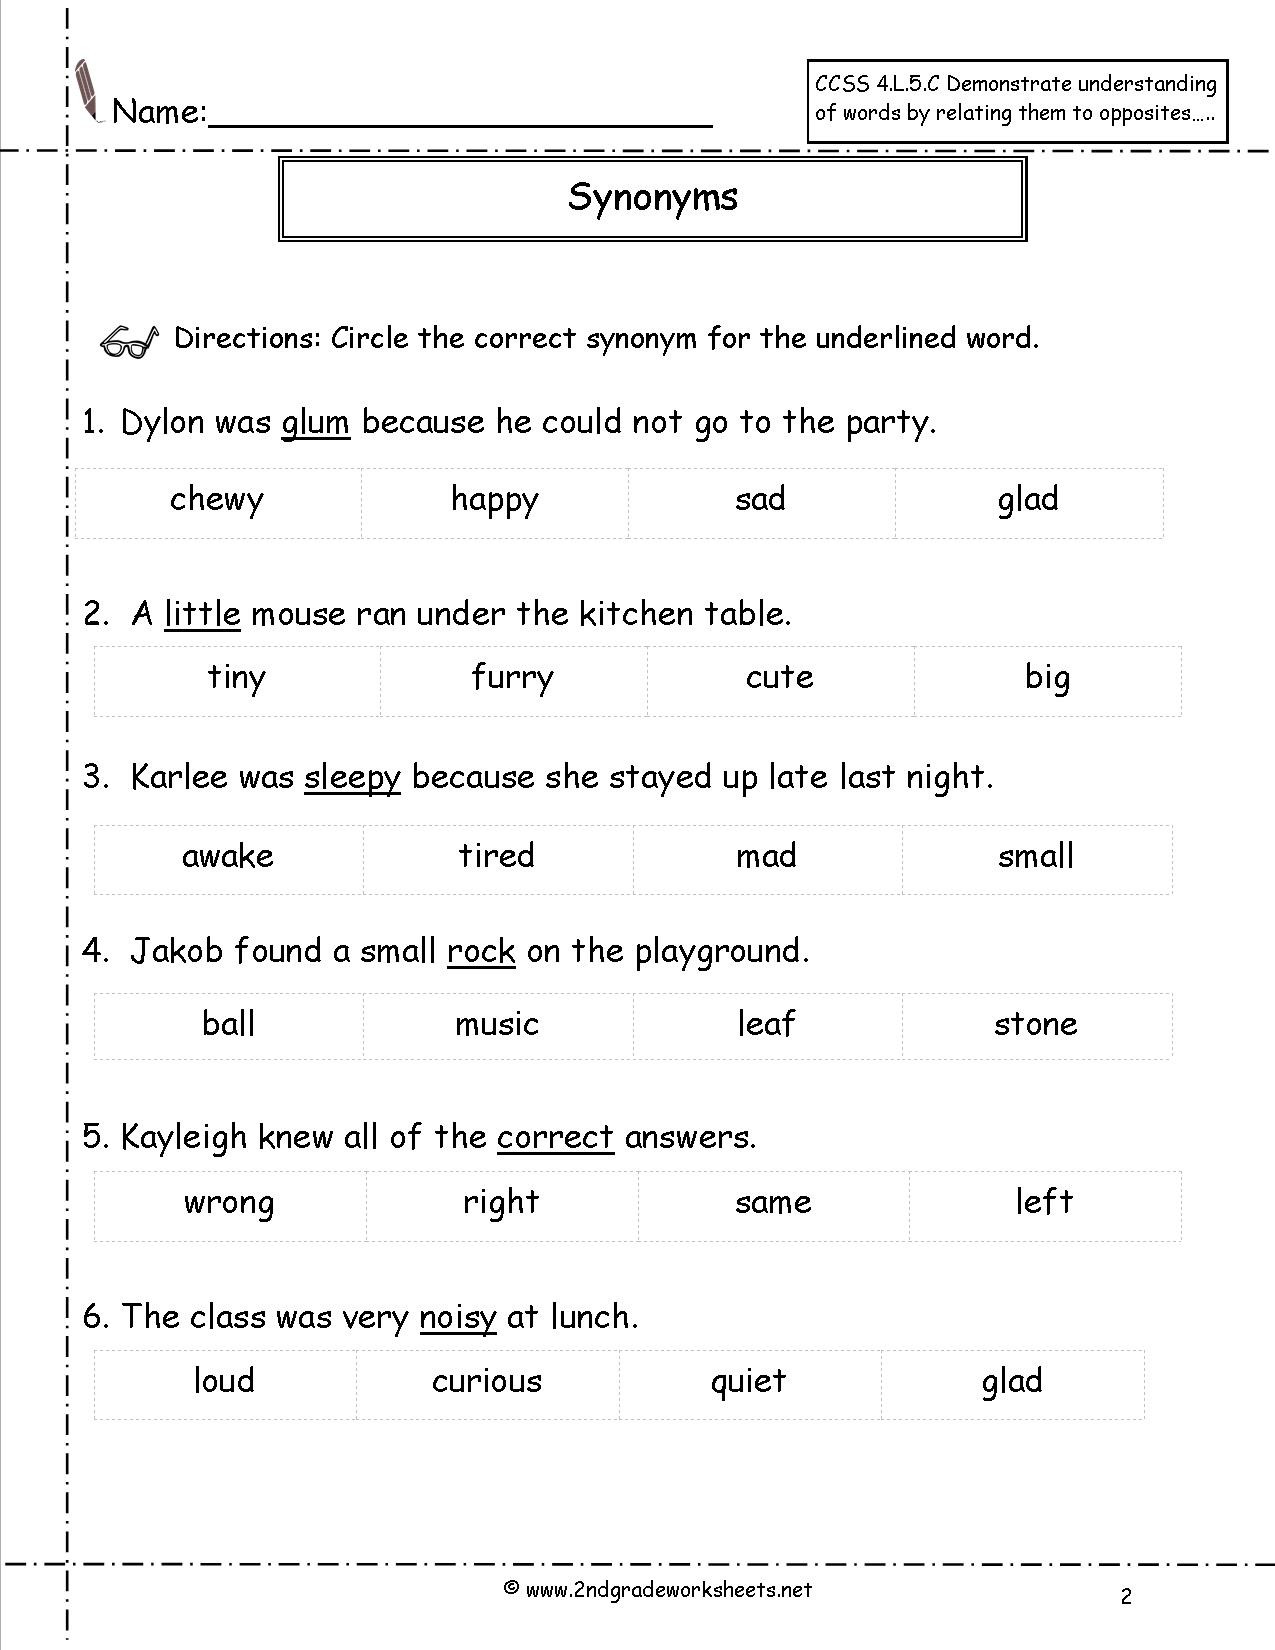 Context Clues Worksheets 3rd Grade Synonyms and Antonyms Worksheets Antonym for Third Grade